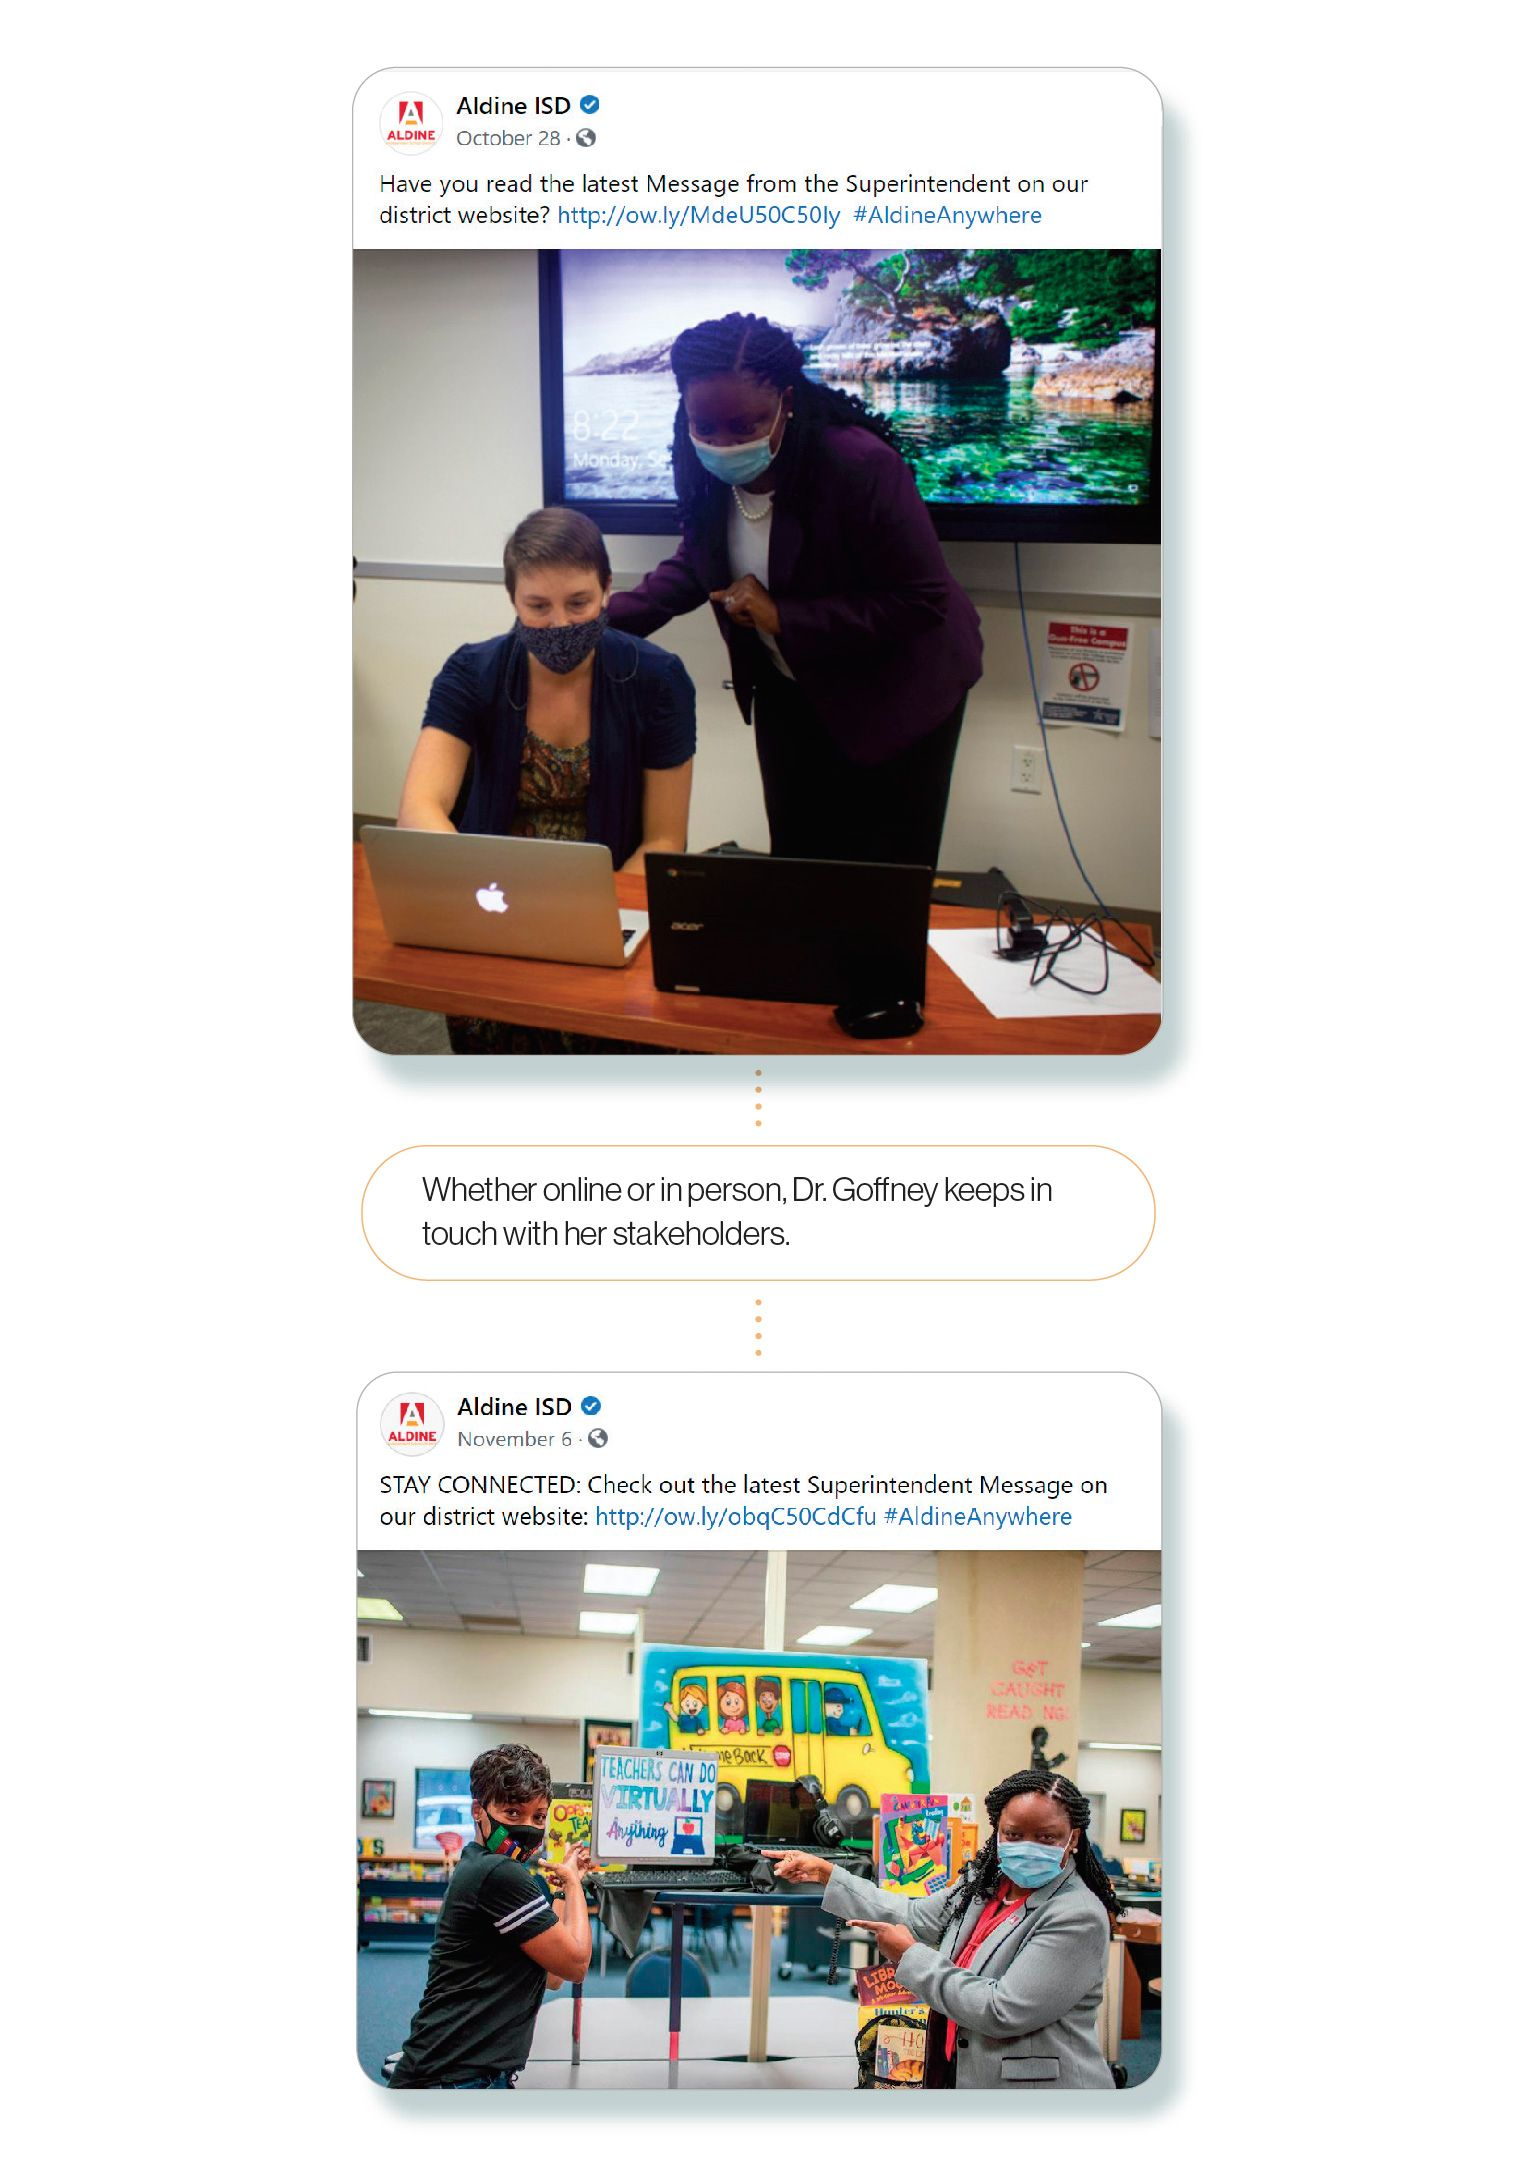 Images: Aldine ISD Facebook posts showing Superintendent LaTonya Goffney visting with students and staff, with the SchoolCEO caption 'Whether online or in person, Dr. Goffney keeps in touch with her stakeholders.'